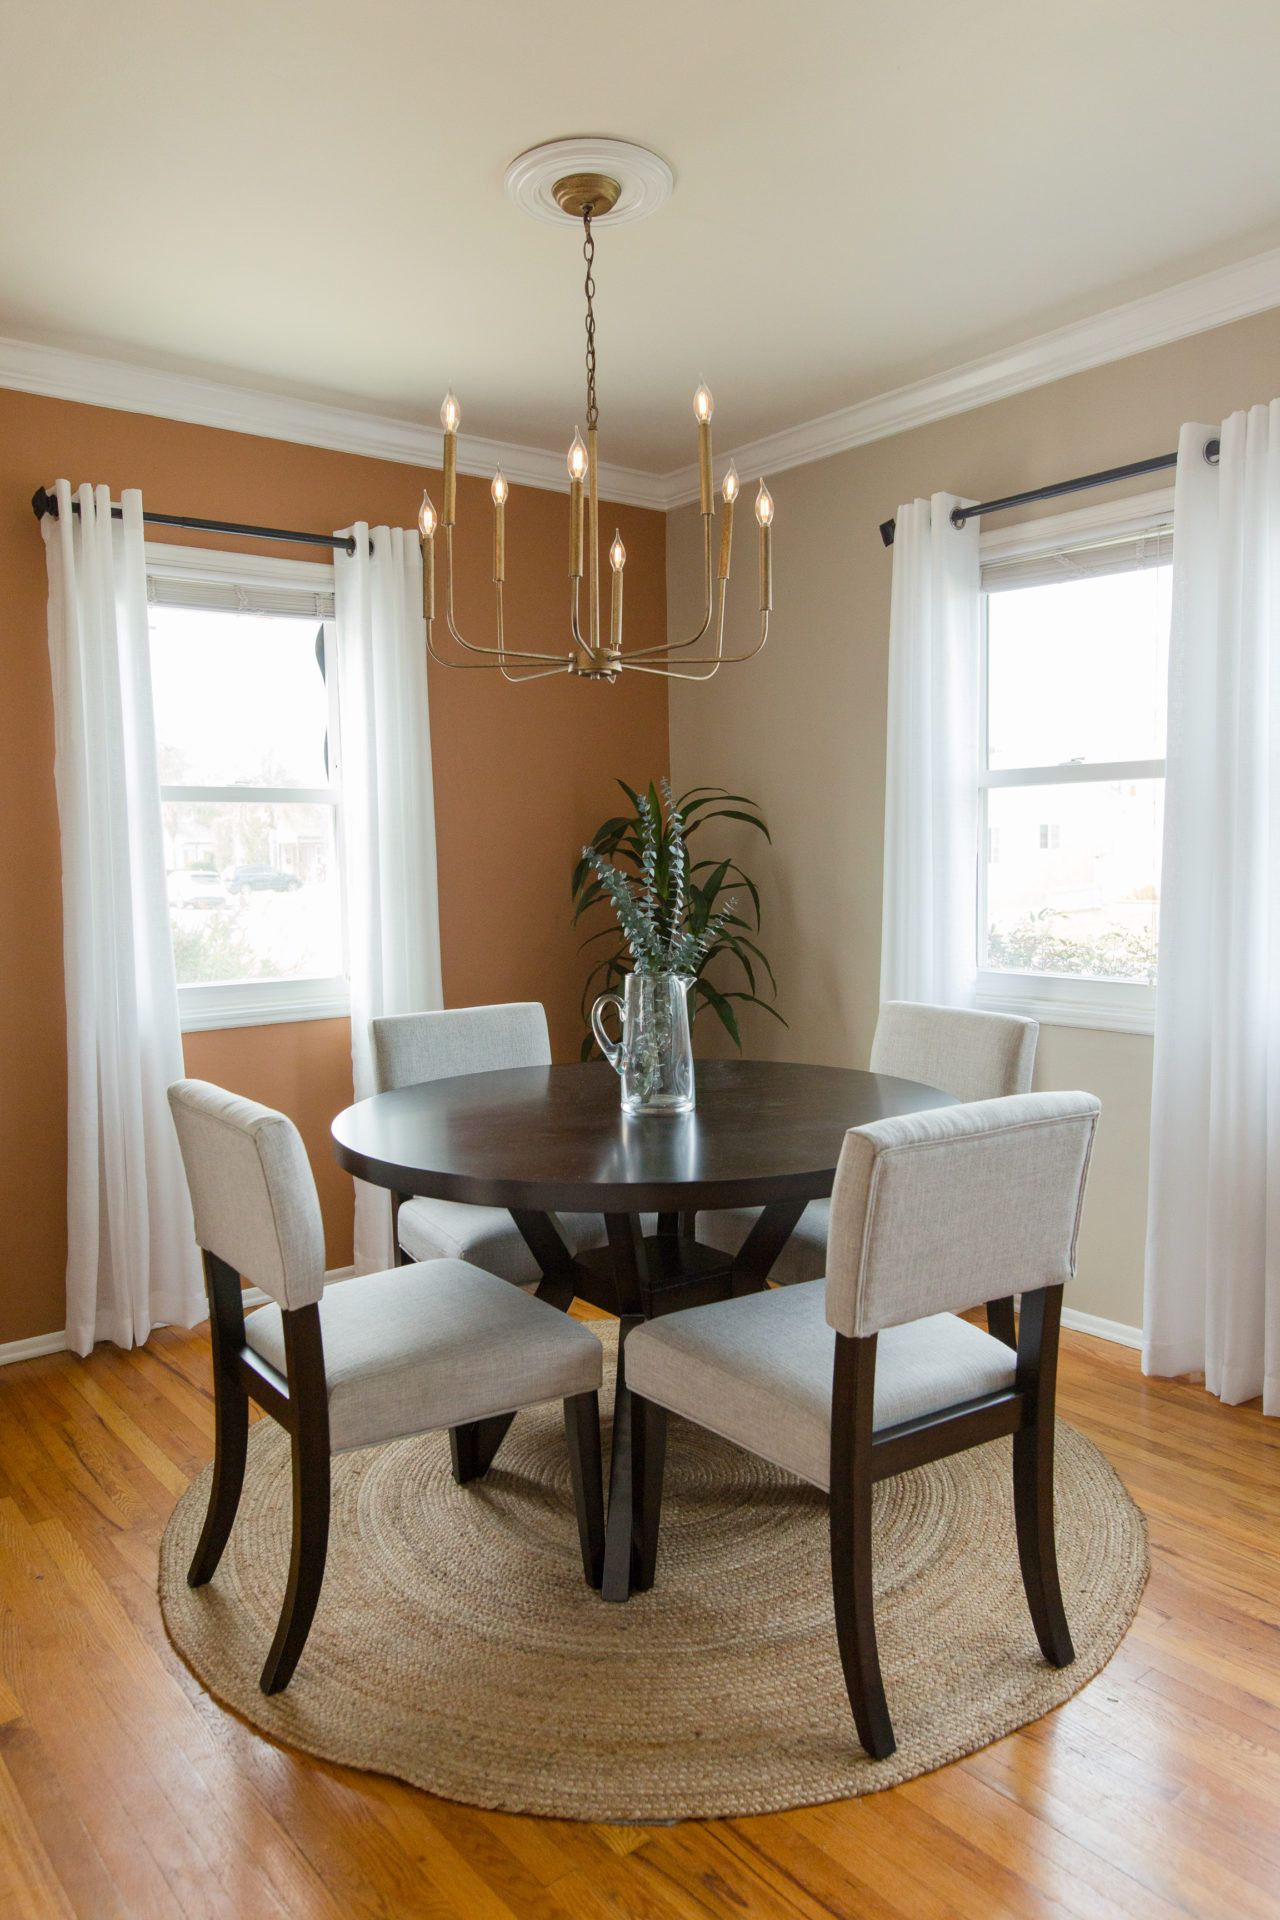 We Use All Of The 2020 Color Trends To Decorate A Room In 2020 Living Room Orange Dining Room Paint Colors Dining Room Colors #statement #wall #living #room